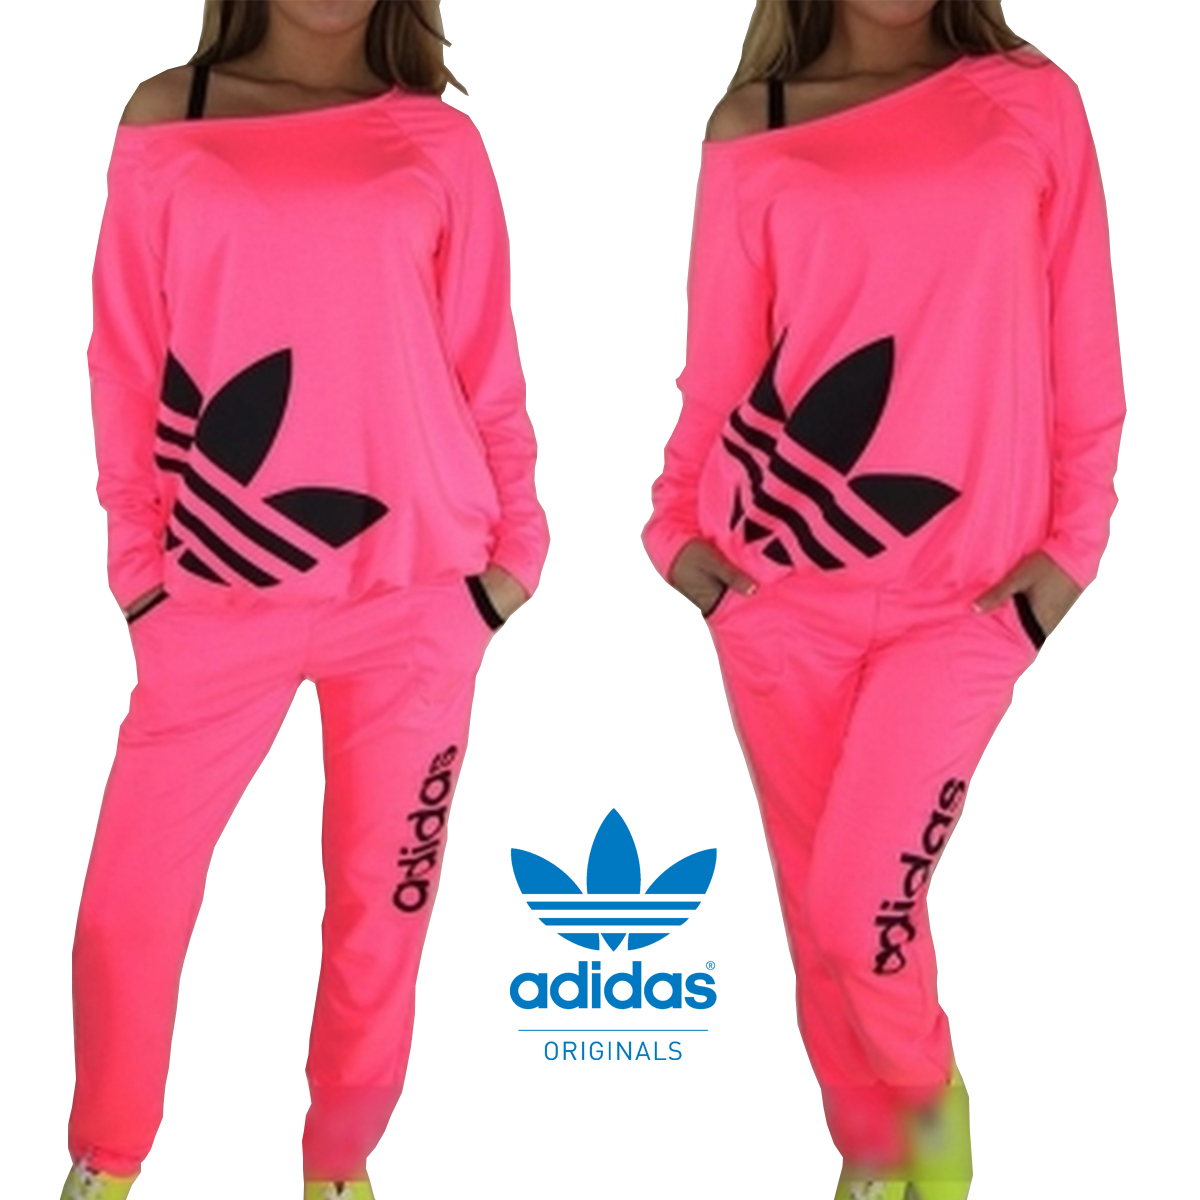 Adidas neon women sports suit track suit sleeping suit set pnk from sporty on storenvy